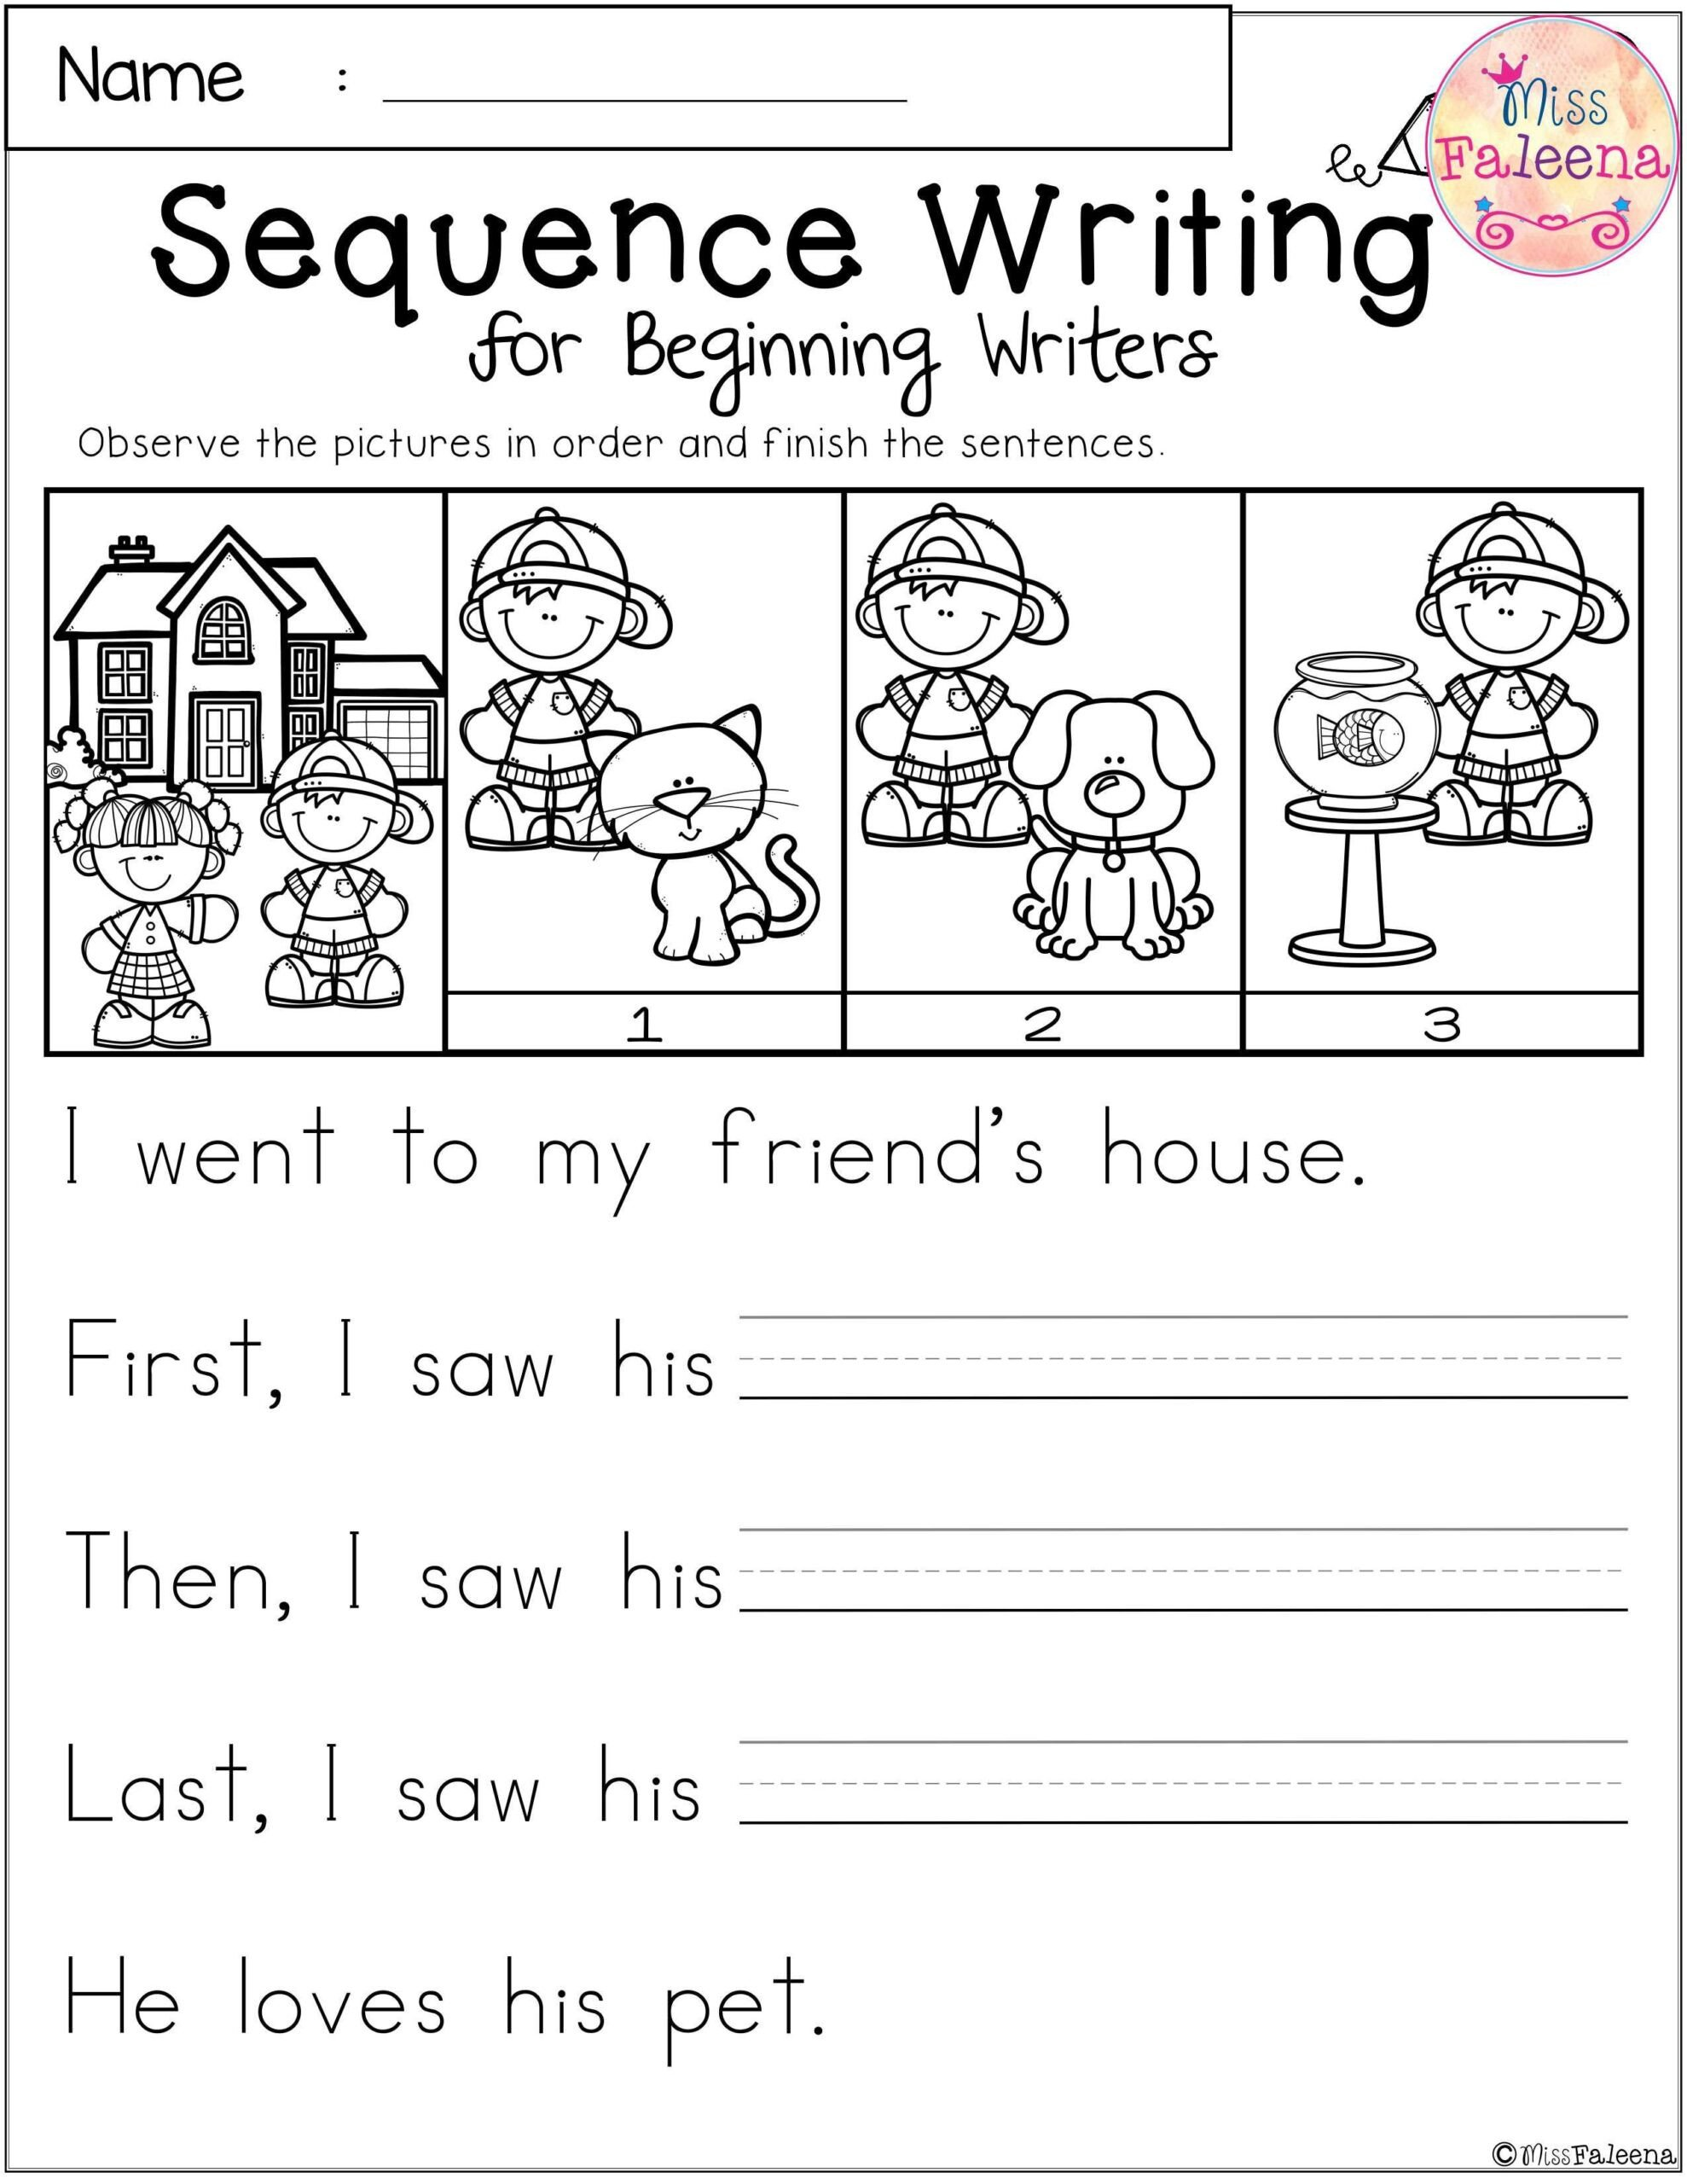 free sequence writing for beginning writers sequencing worksheets math activities grade scaled